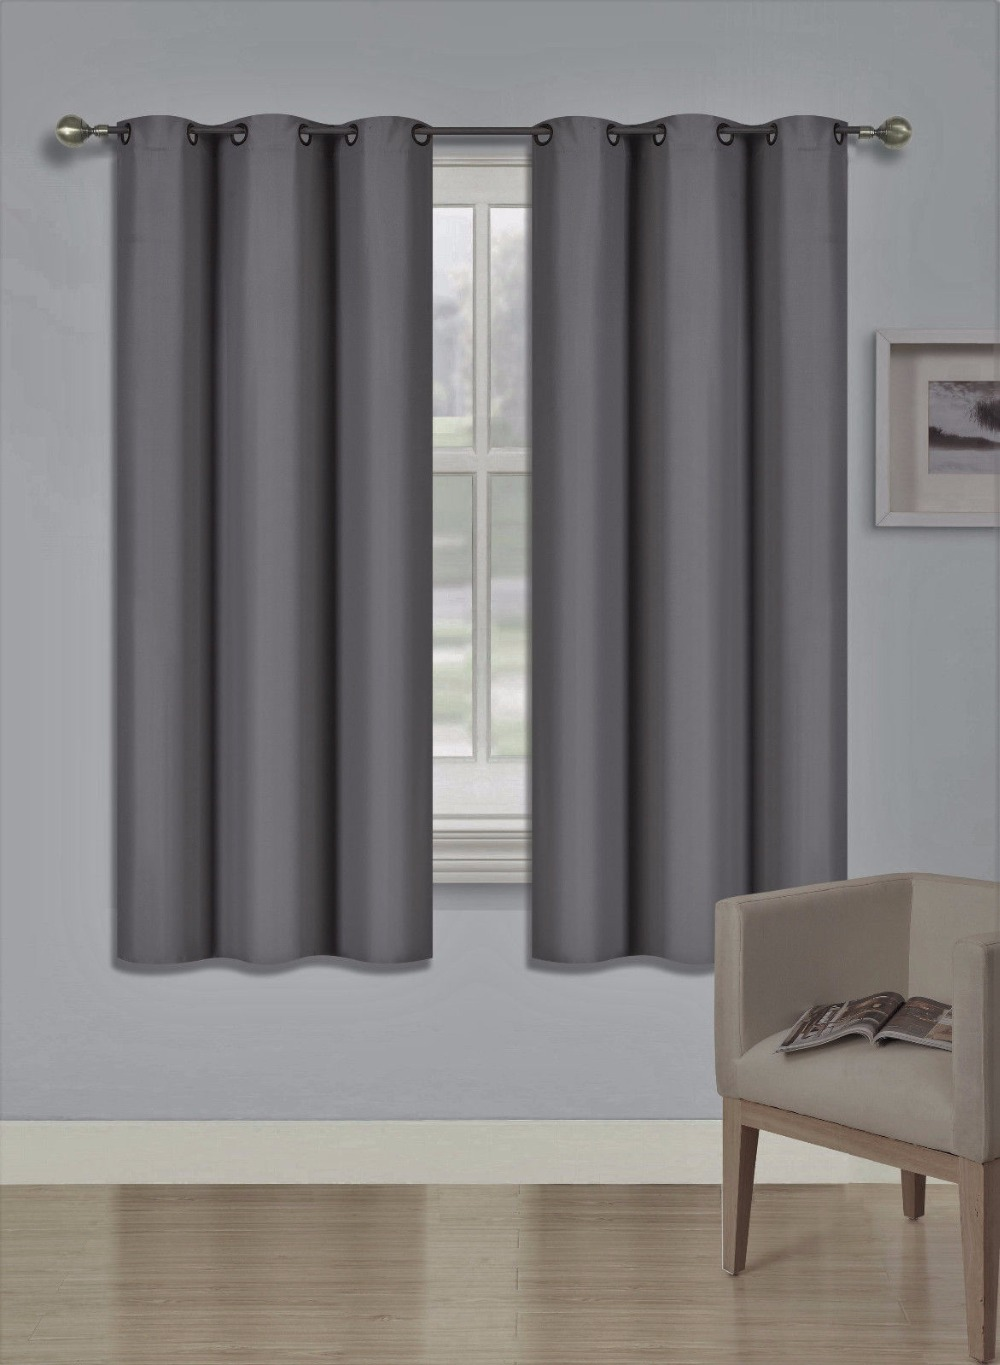 Curtains Blinds Homeideas Blackout Curtains Room Darkening Thermal Insulated Grommet Drapes For Home Furniture Diy Zabbaan Com